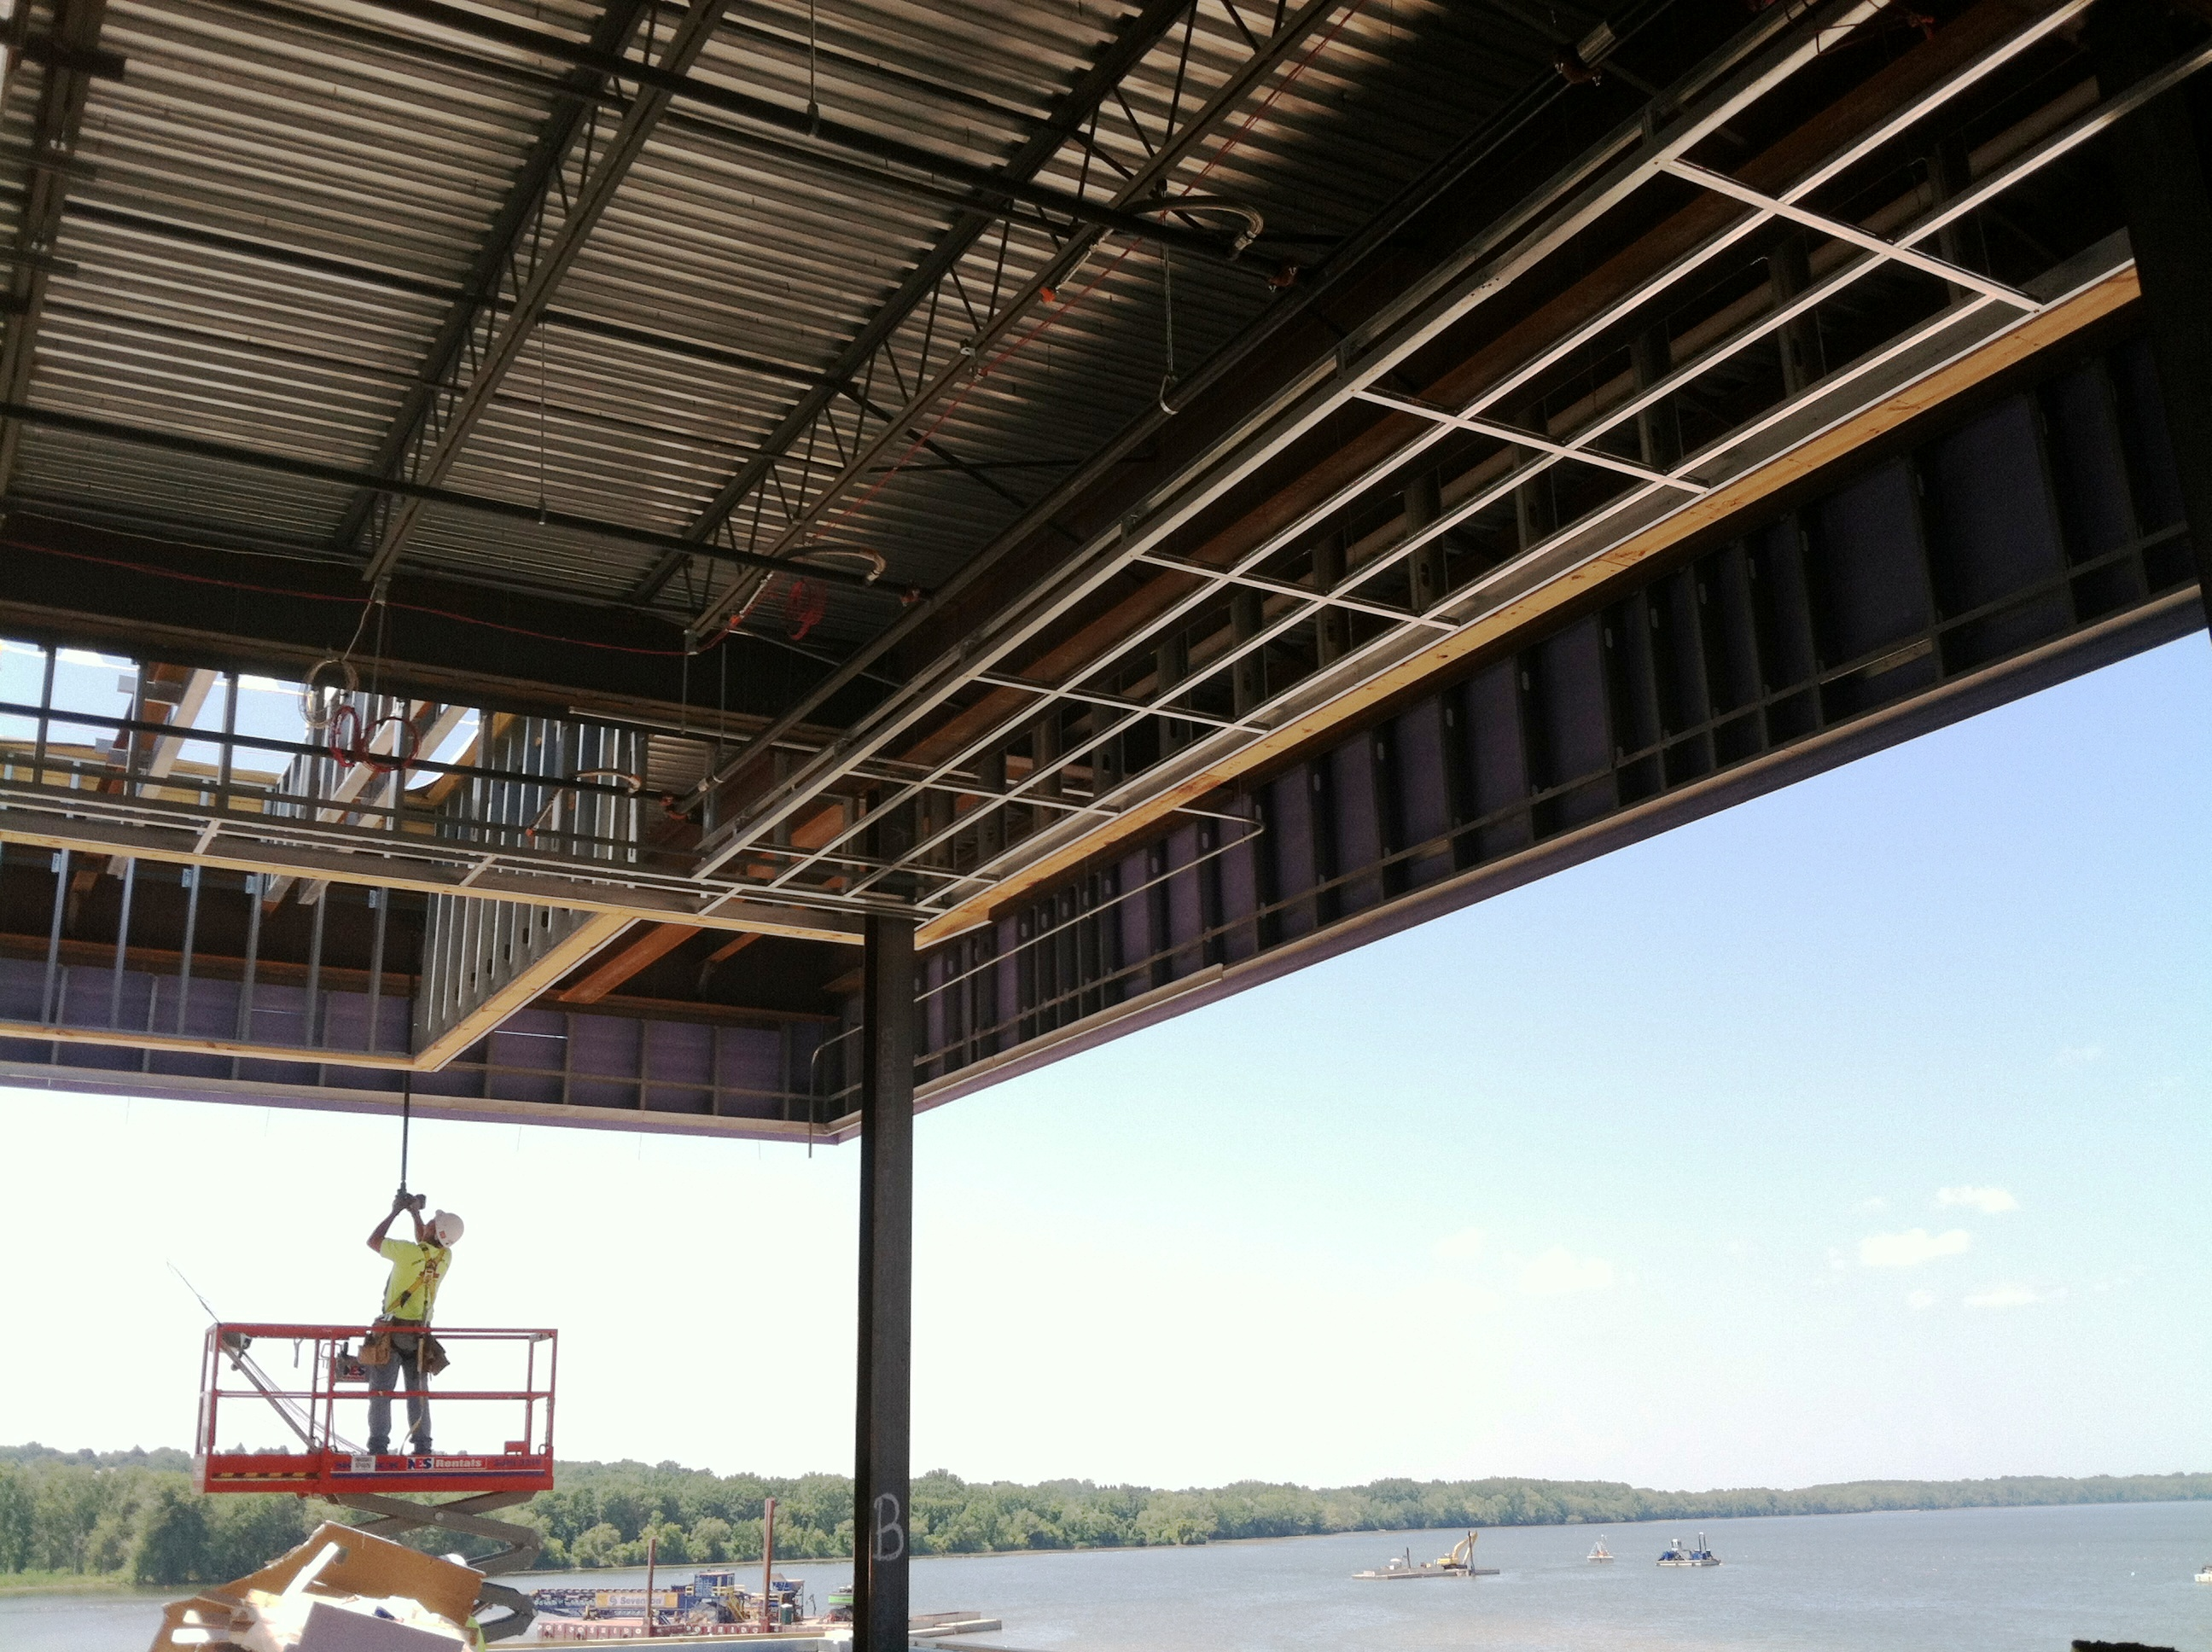 John P. Stopen Lakeview Amphitheater Project roof construction